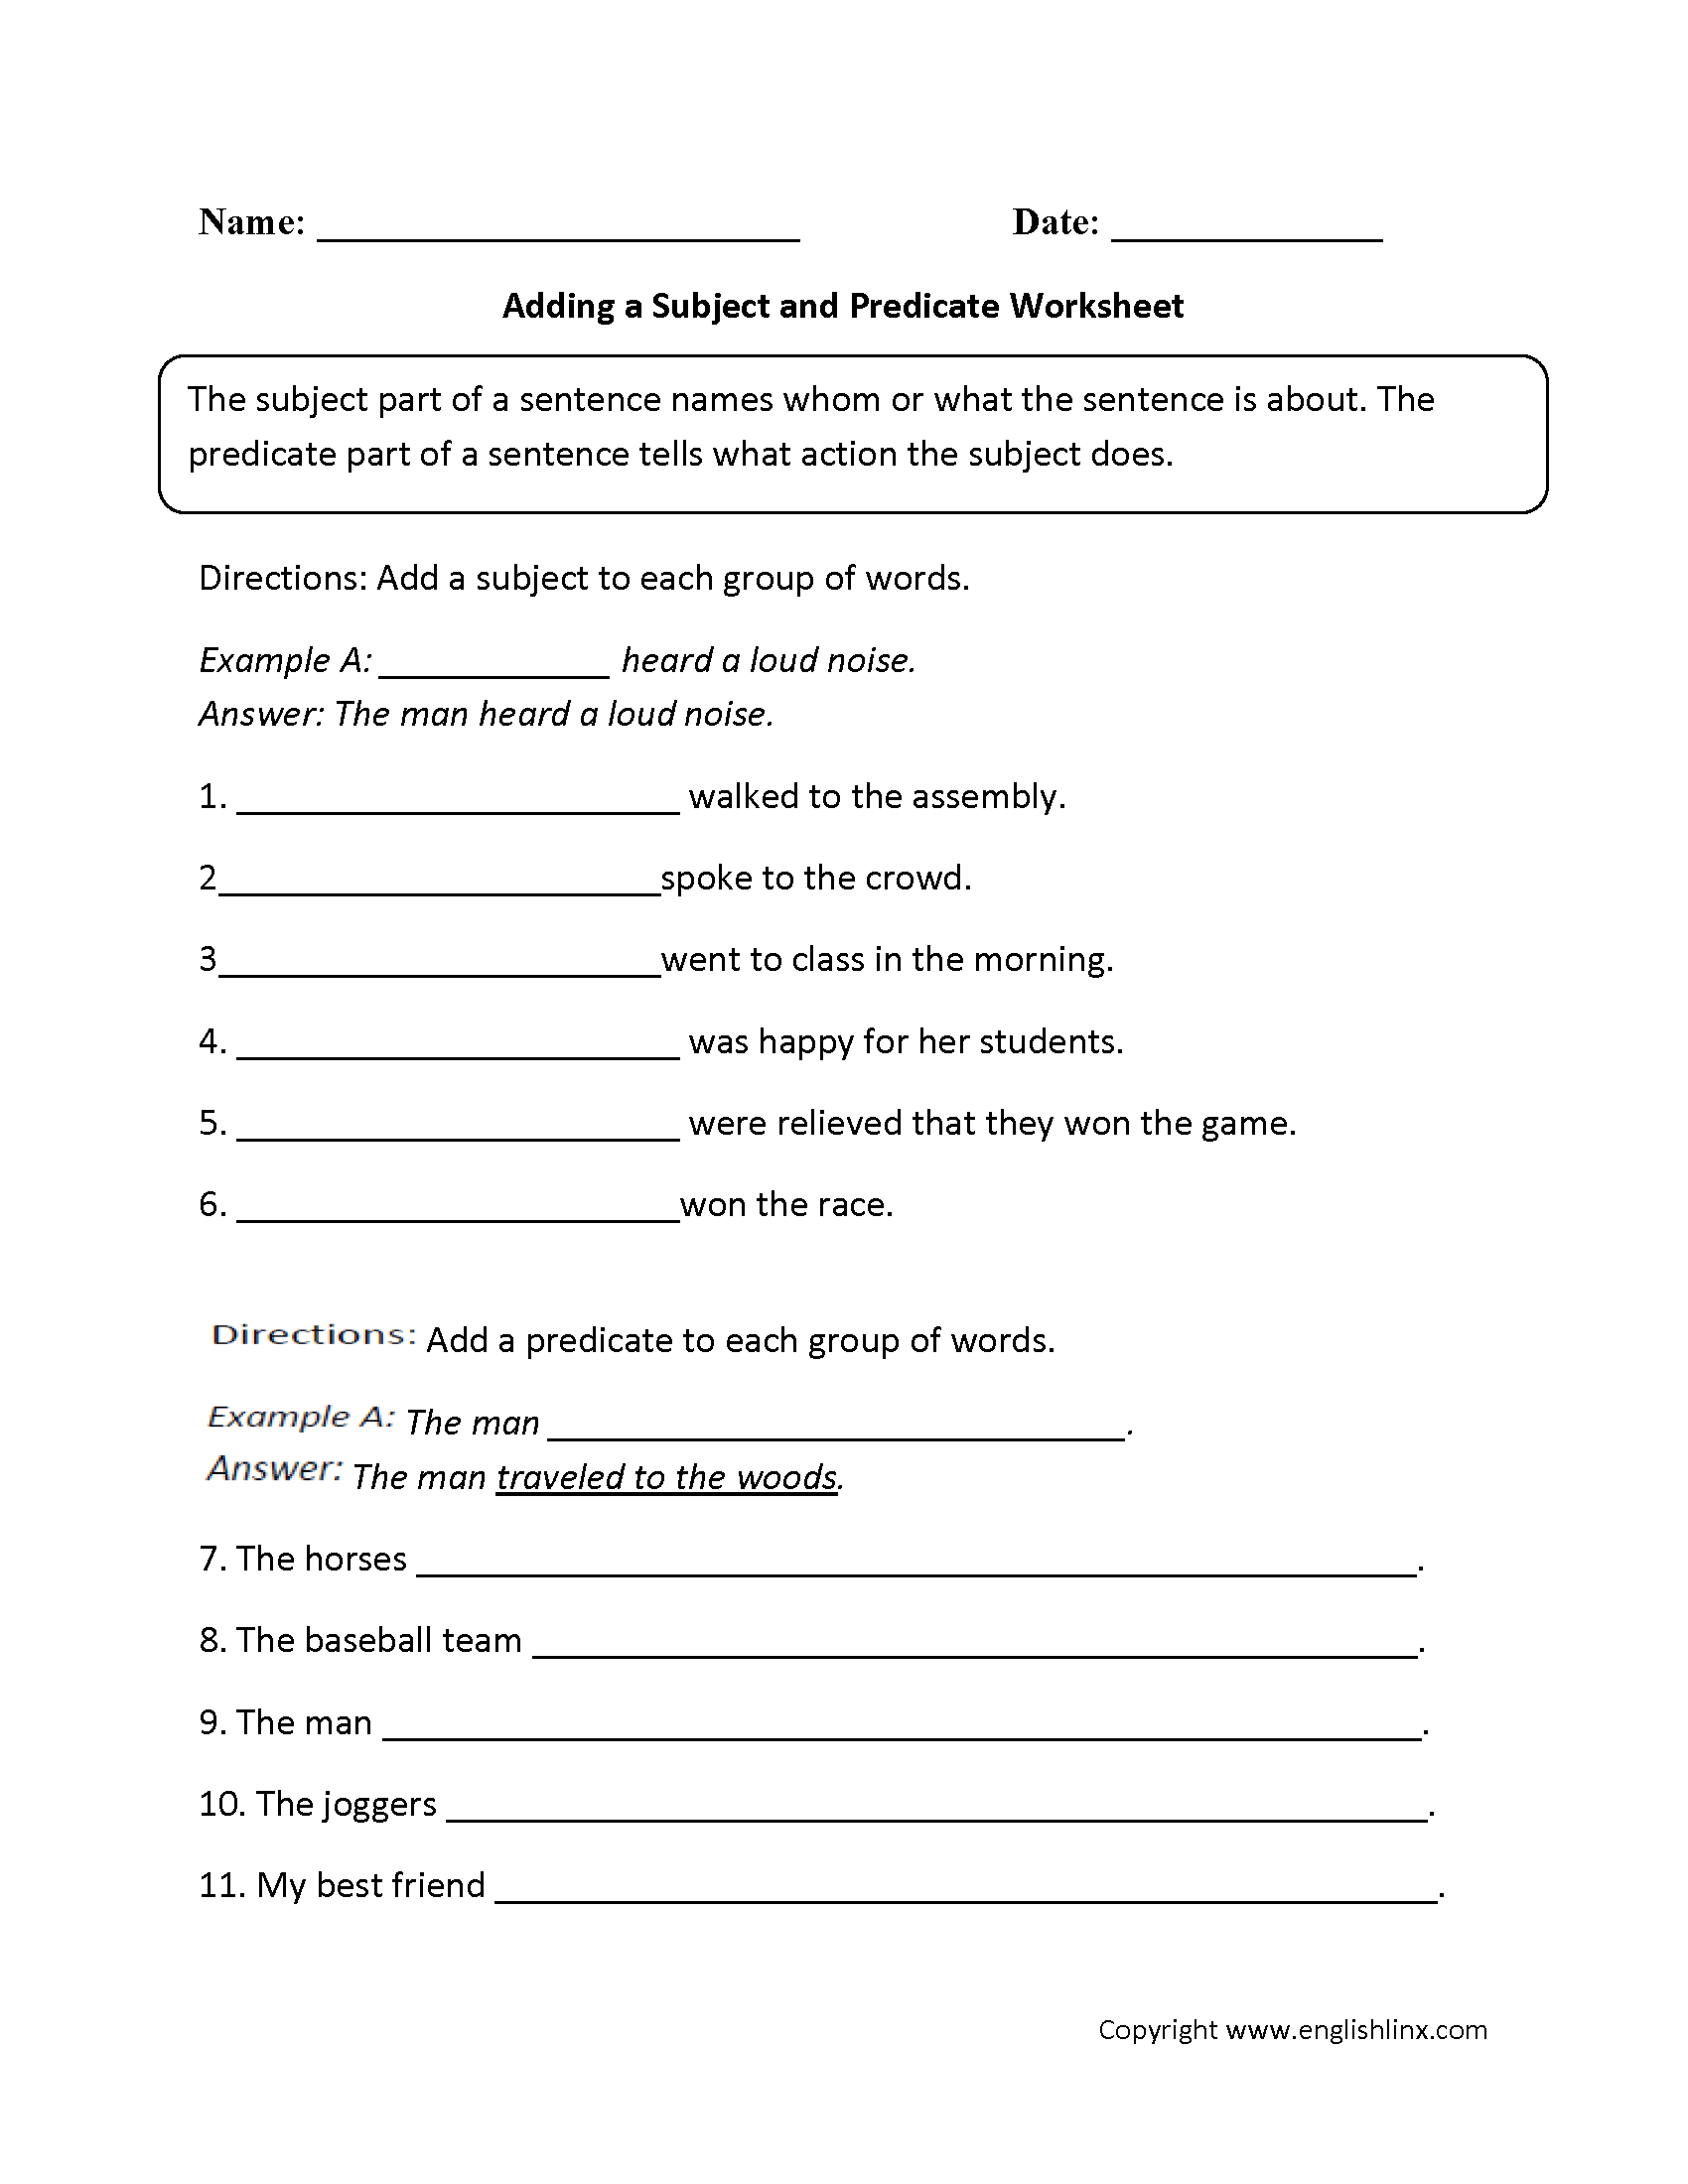 Worksheets 9th Grade English Worksheets englishlinx com subject and predicate worksheets adding a subejct worksheet